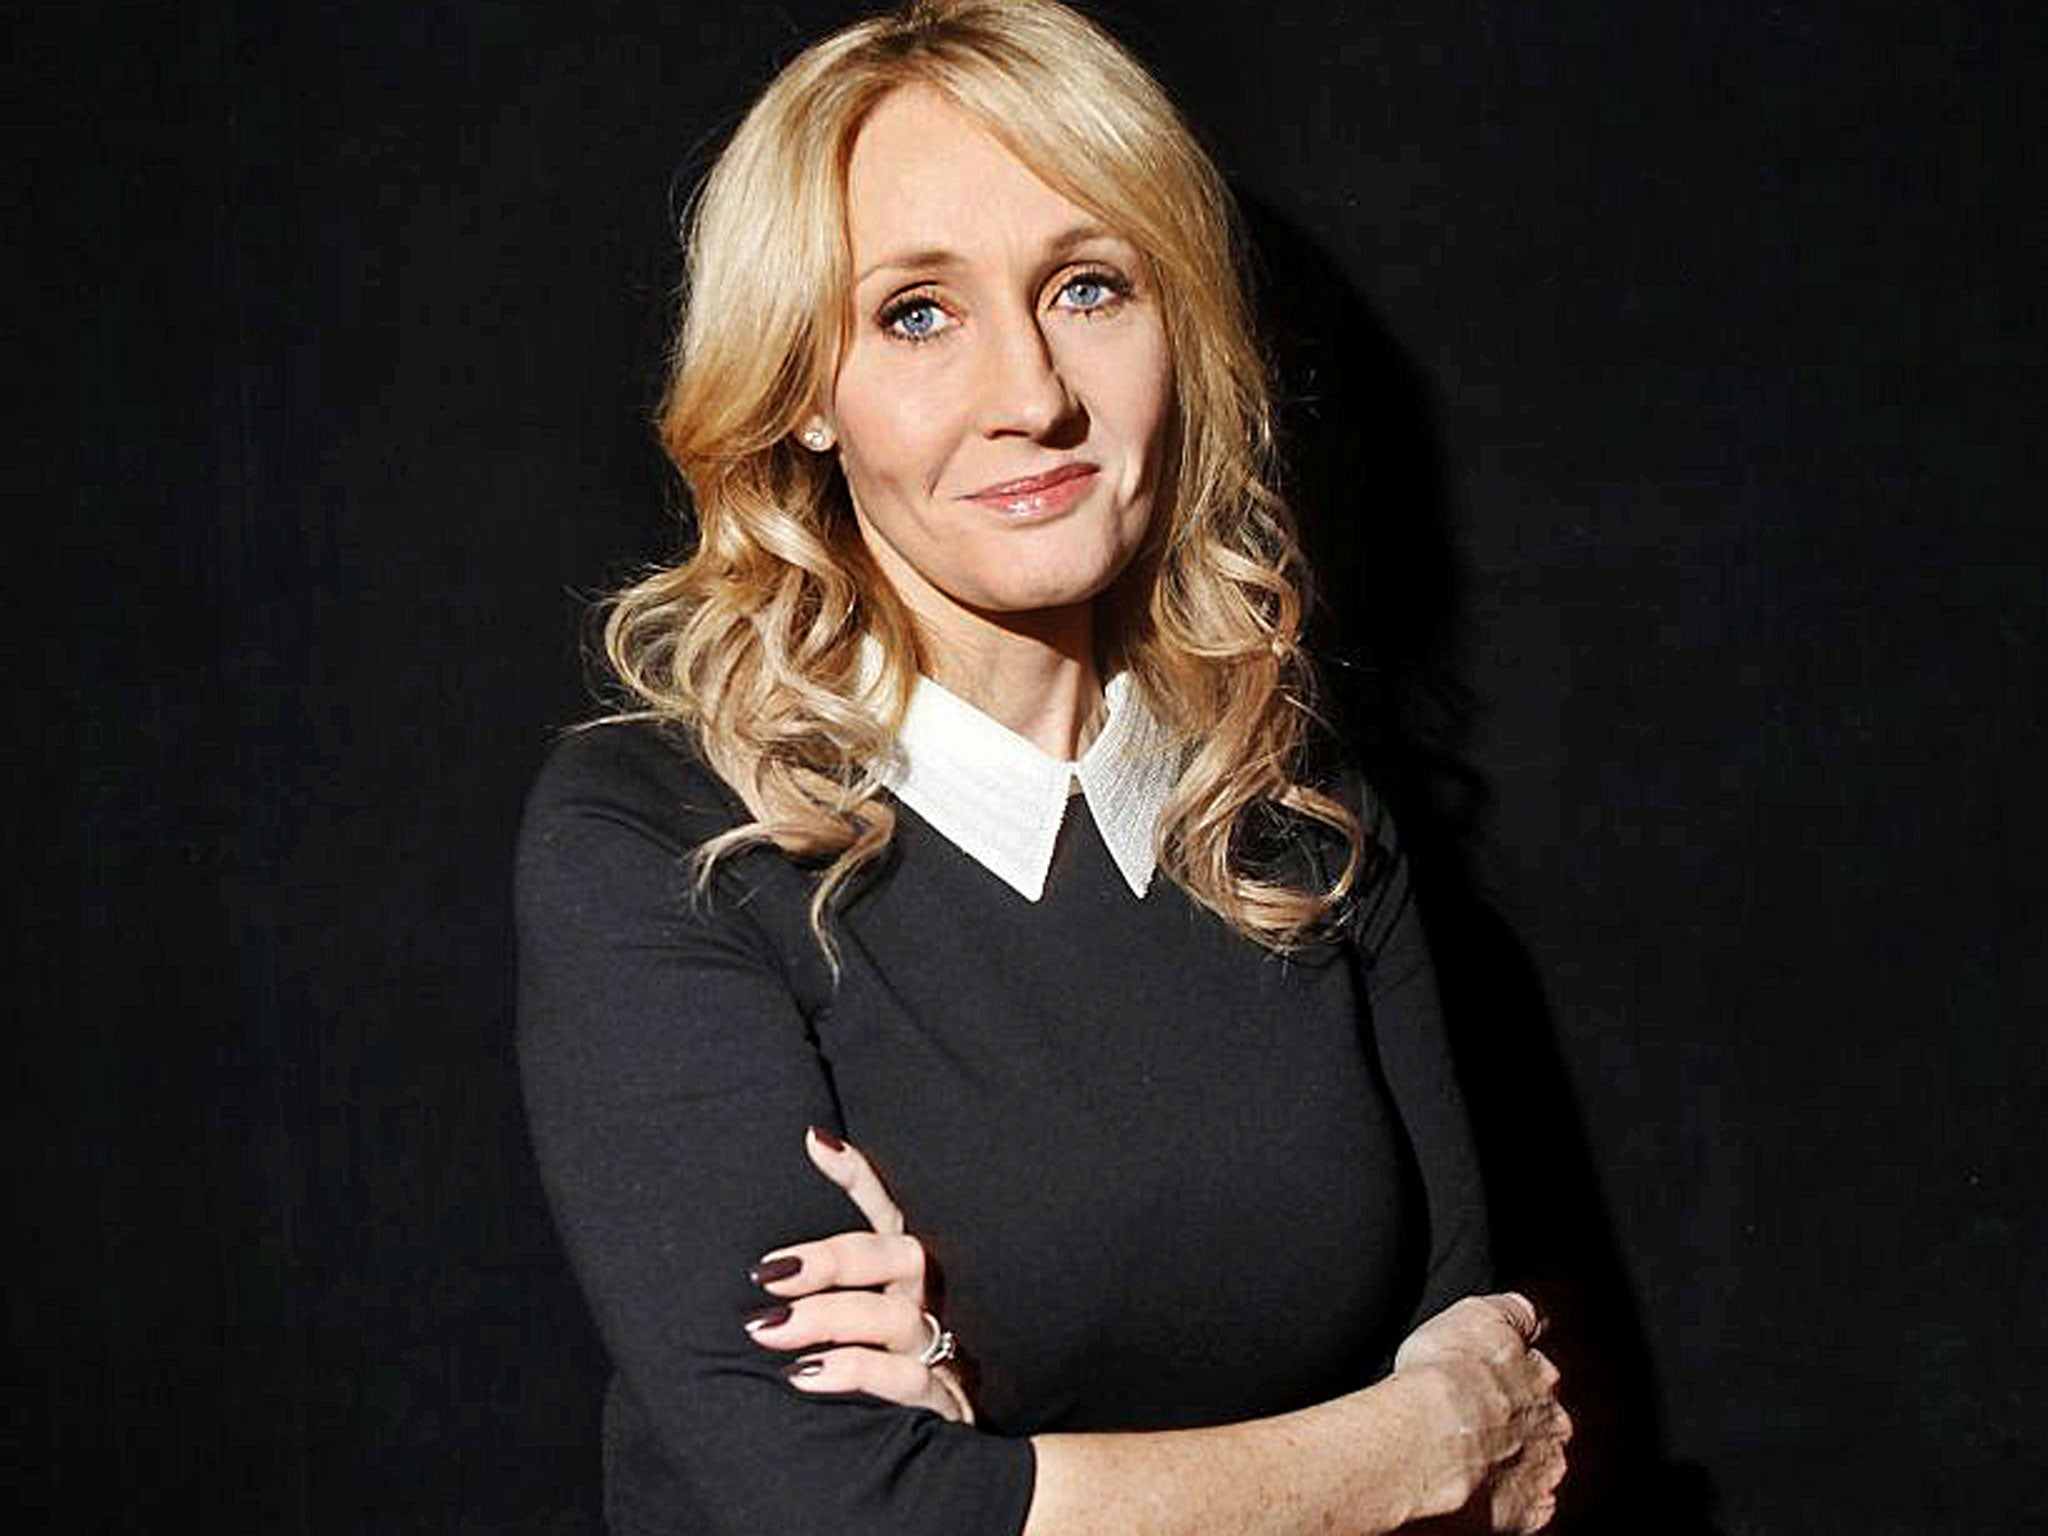 What makes J.K. Rowling's writing stand out?